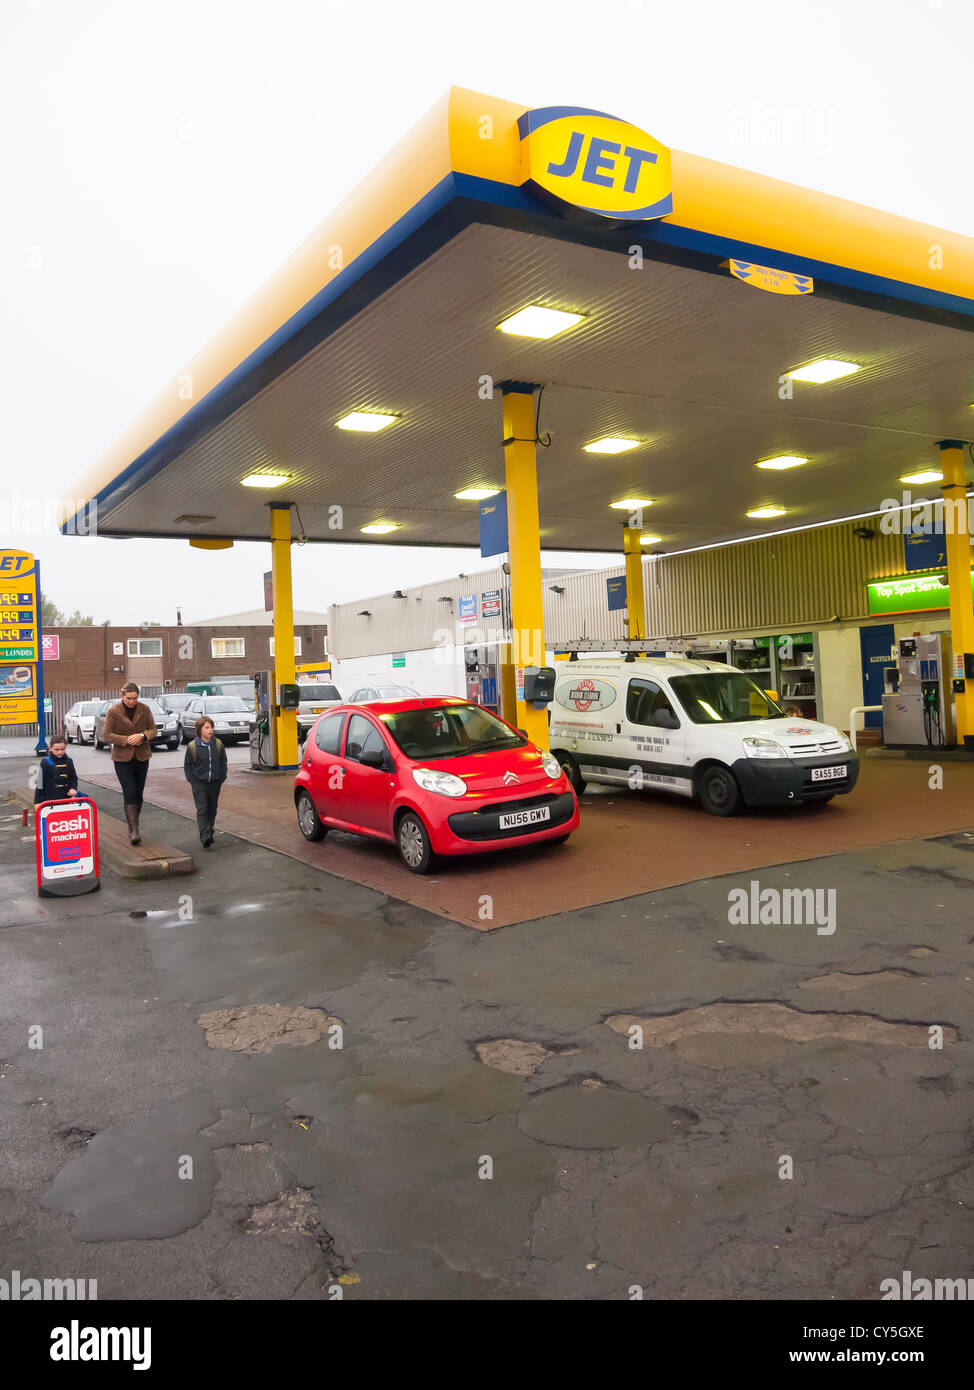 Village Jet filling station and convenience store morning rush hour - Stock Image